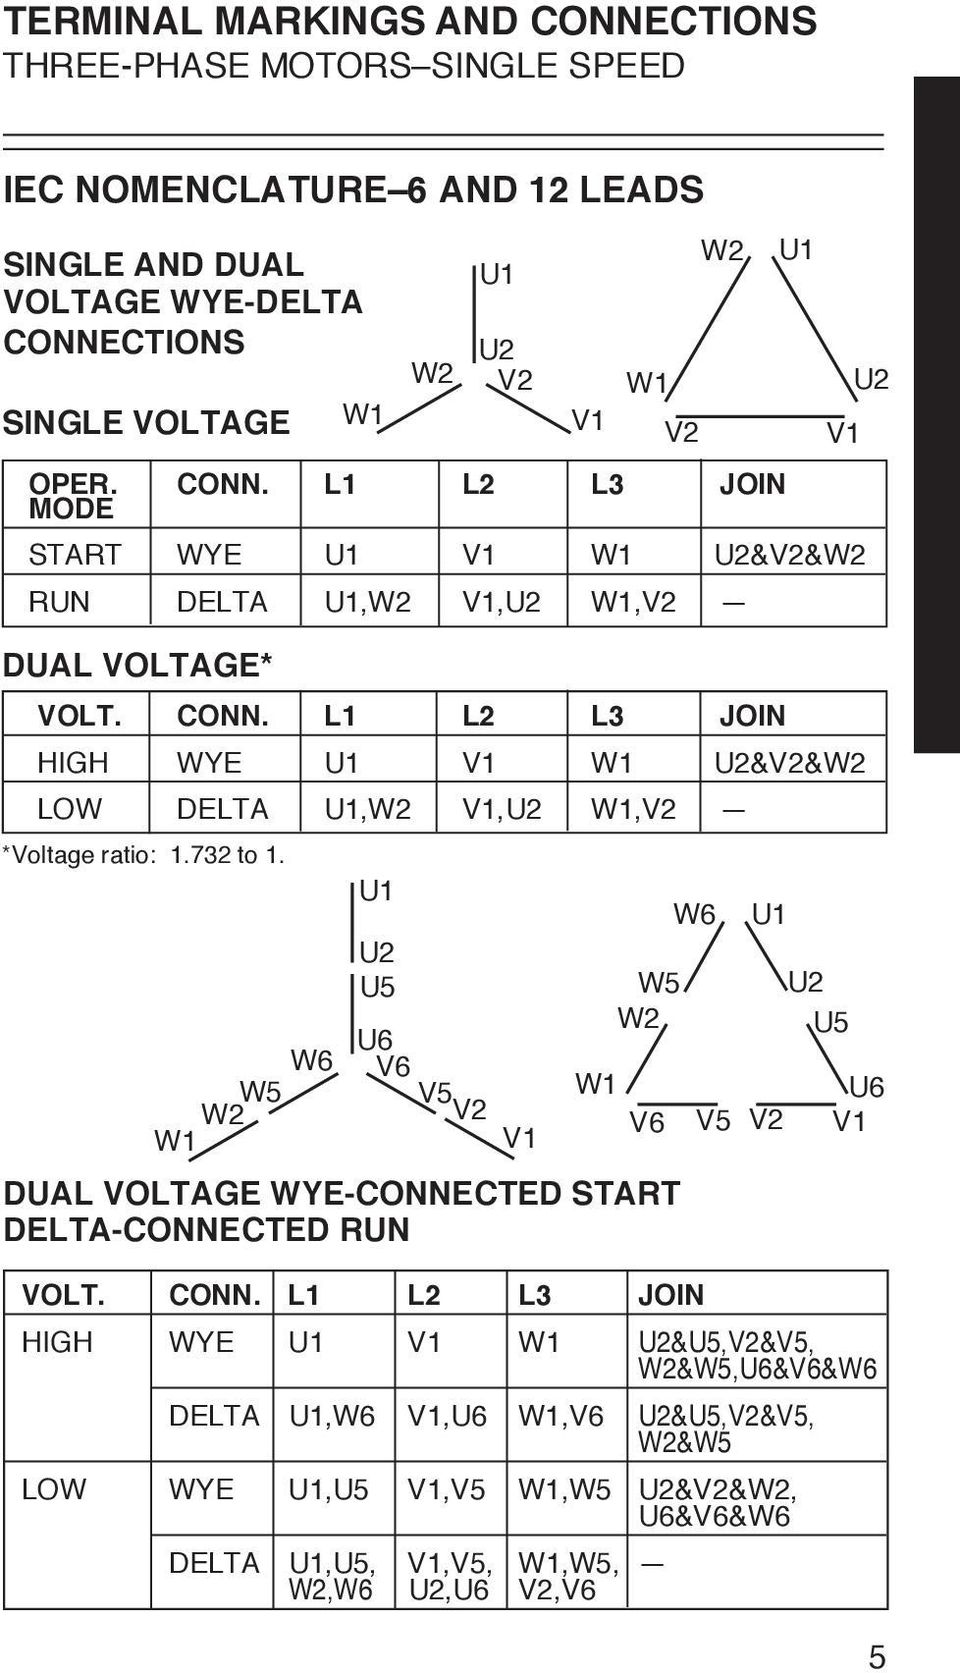 weg 6 lead motor wiring diagram ewiring weg 12 lead motor wiring diagram solidfonts